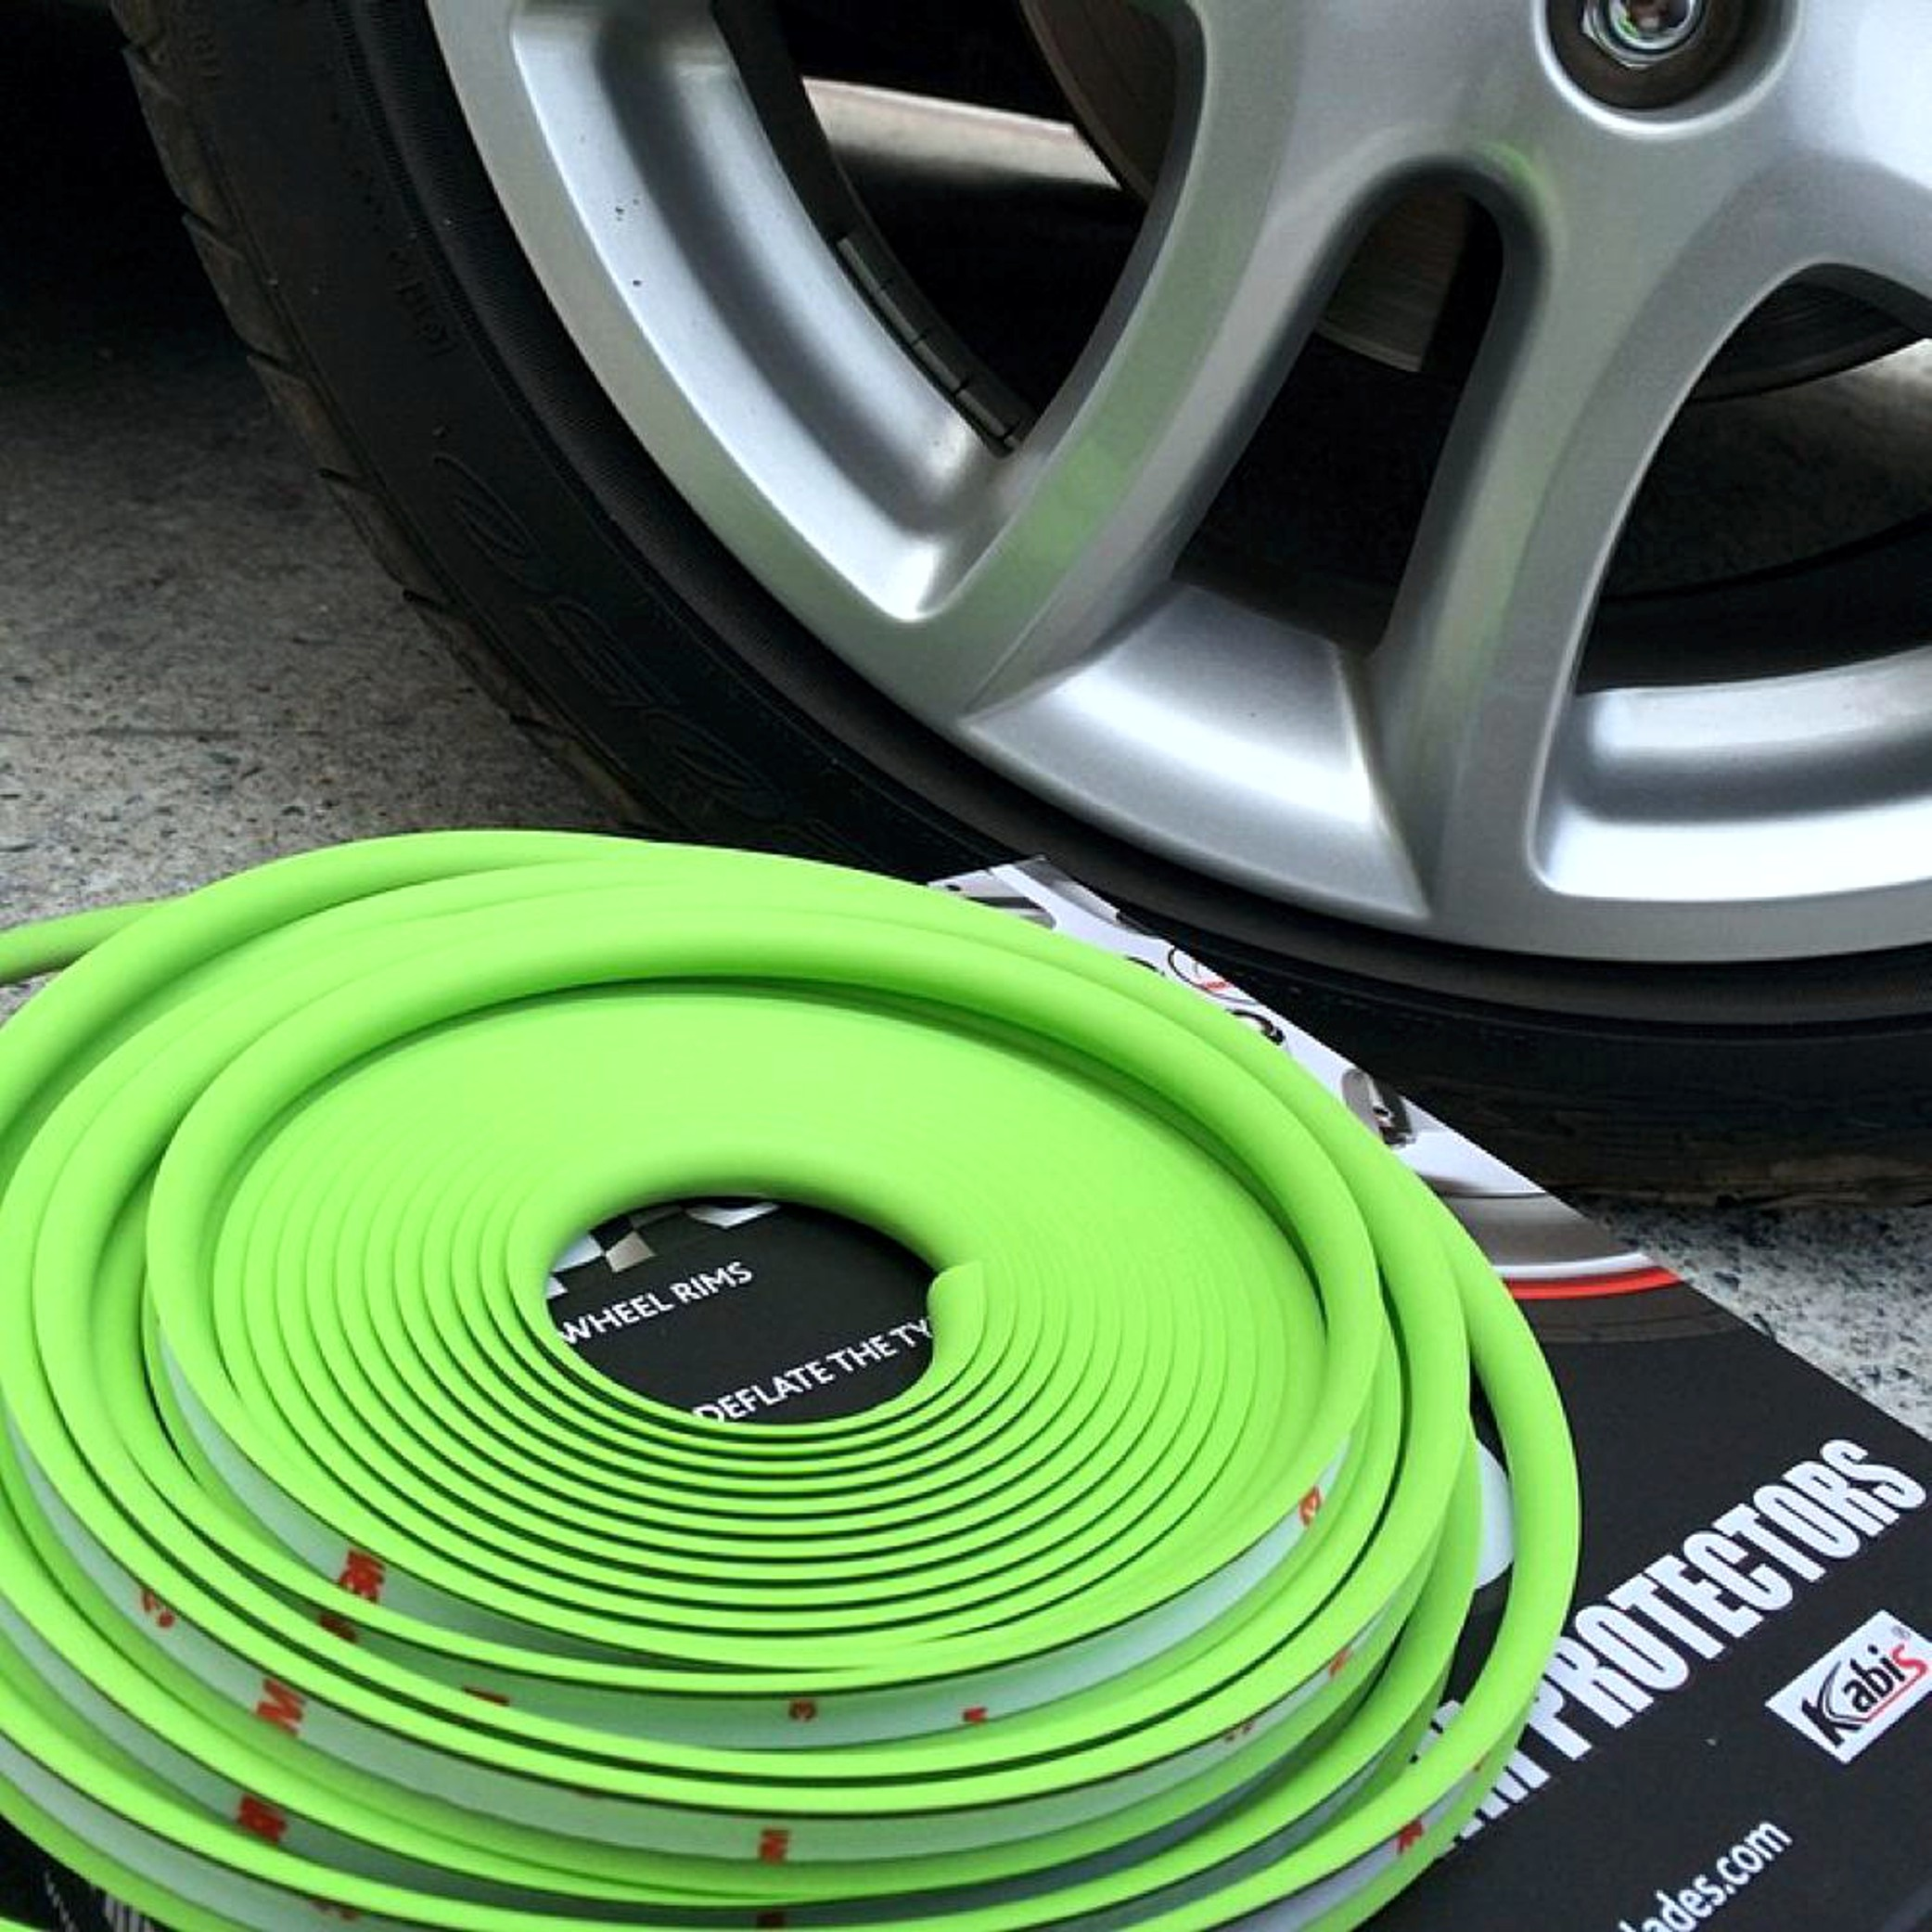 NEW - Rimblades with 3M glue - Singlepack - colour: red - Premium rim protection and styling for alloy wheel rims up to 22'' – Bild 5